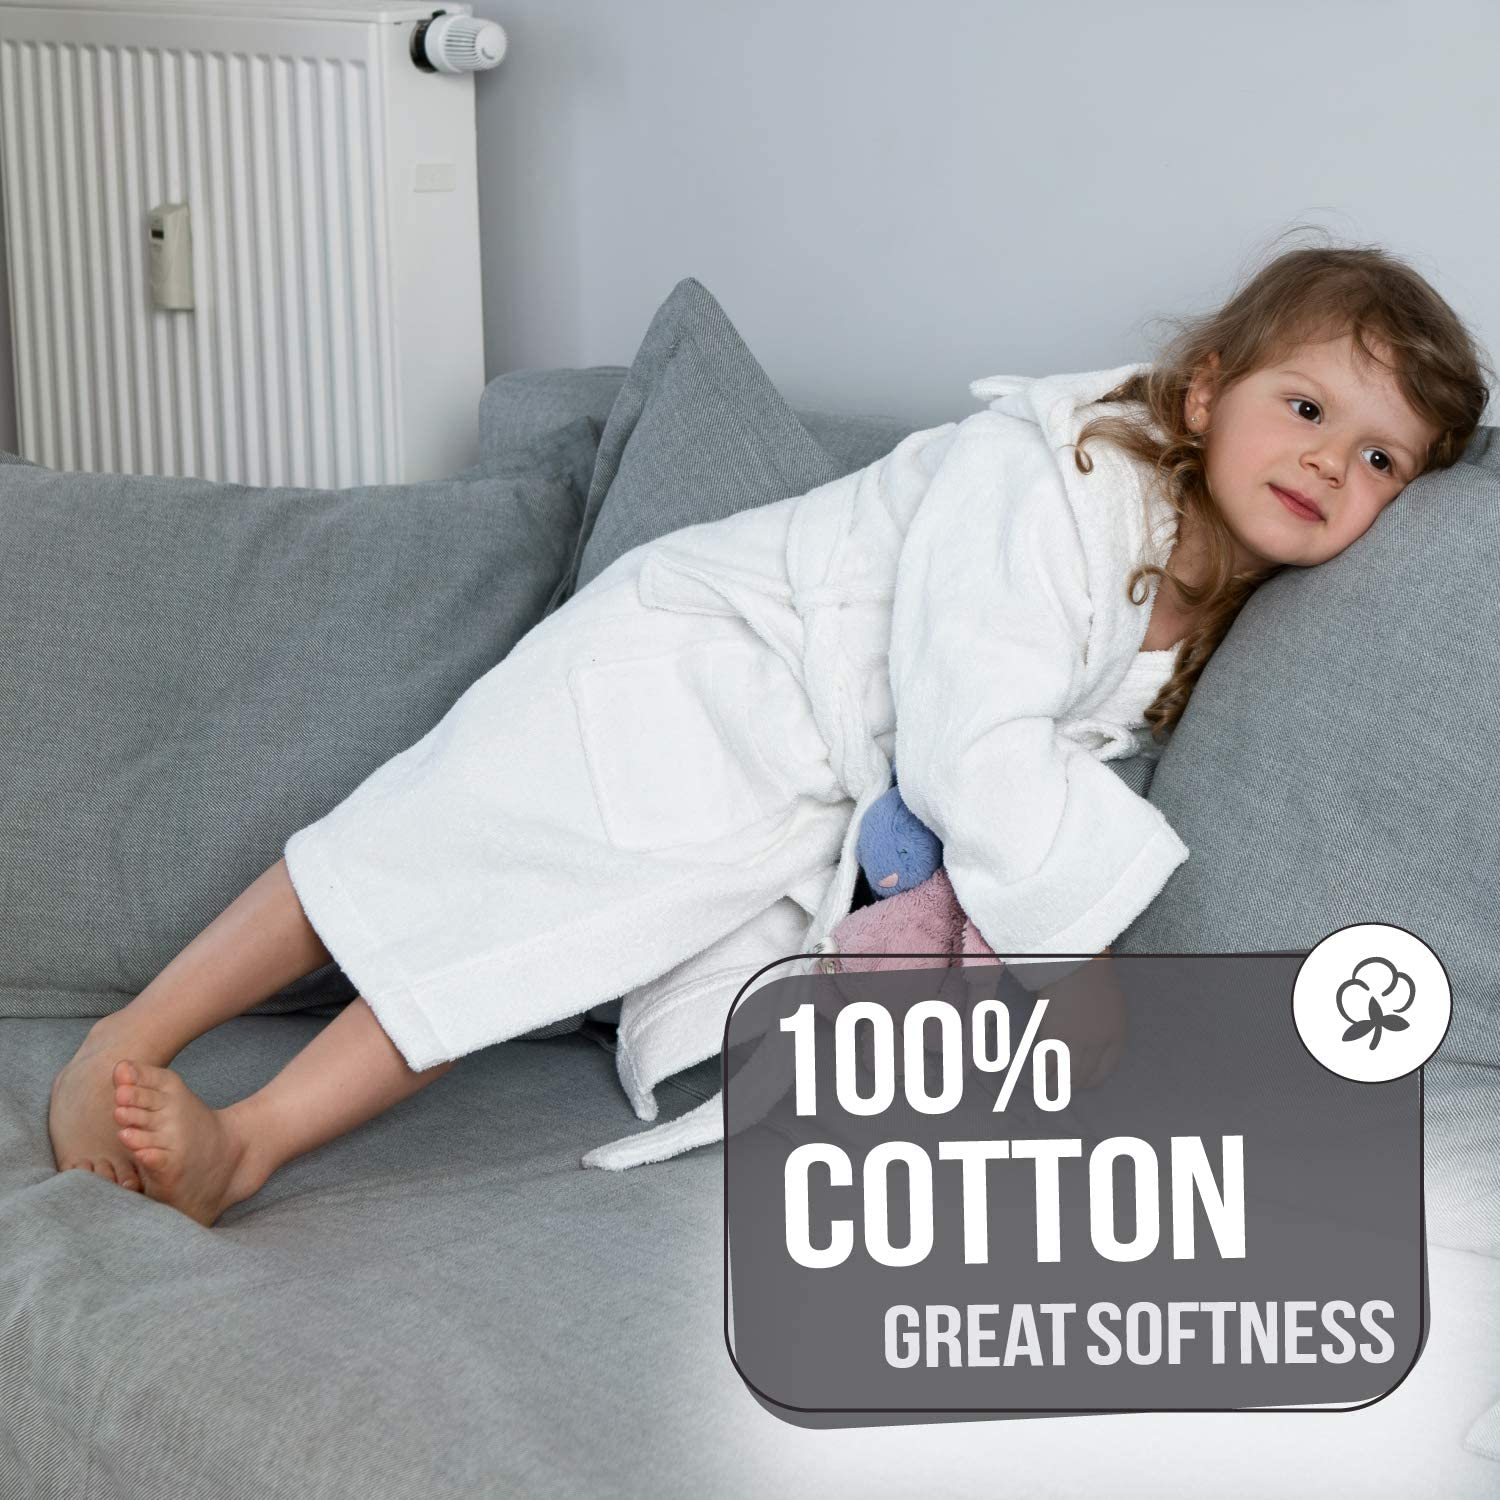 Certified Without Chemicals Child Bathrobe Twinzen Kids Bathrobe Boy and Girl Children Bathtub Outlet Absorbent 100/% Cotton